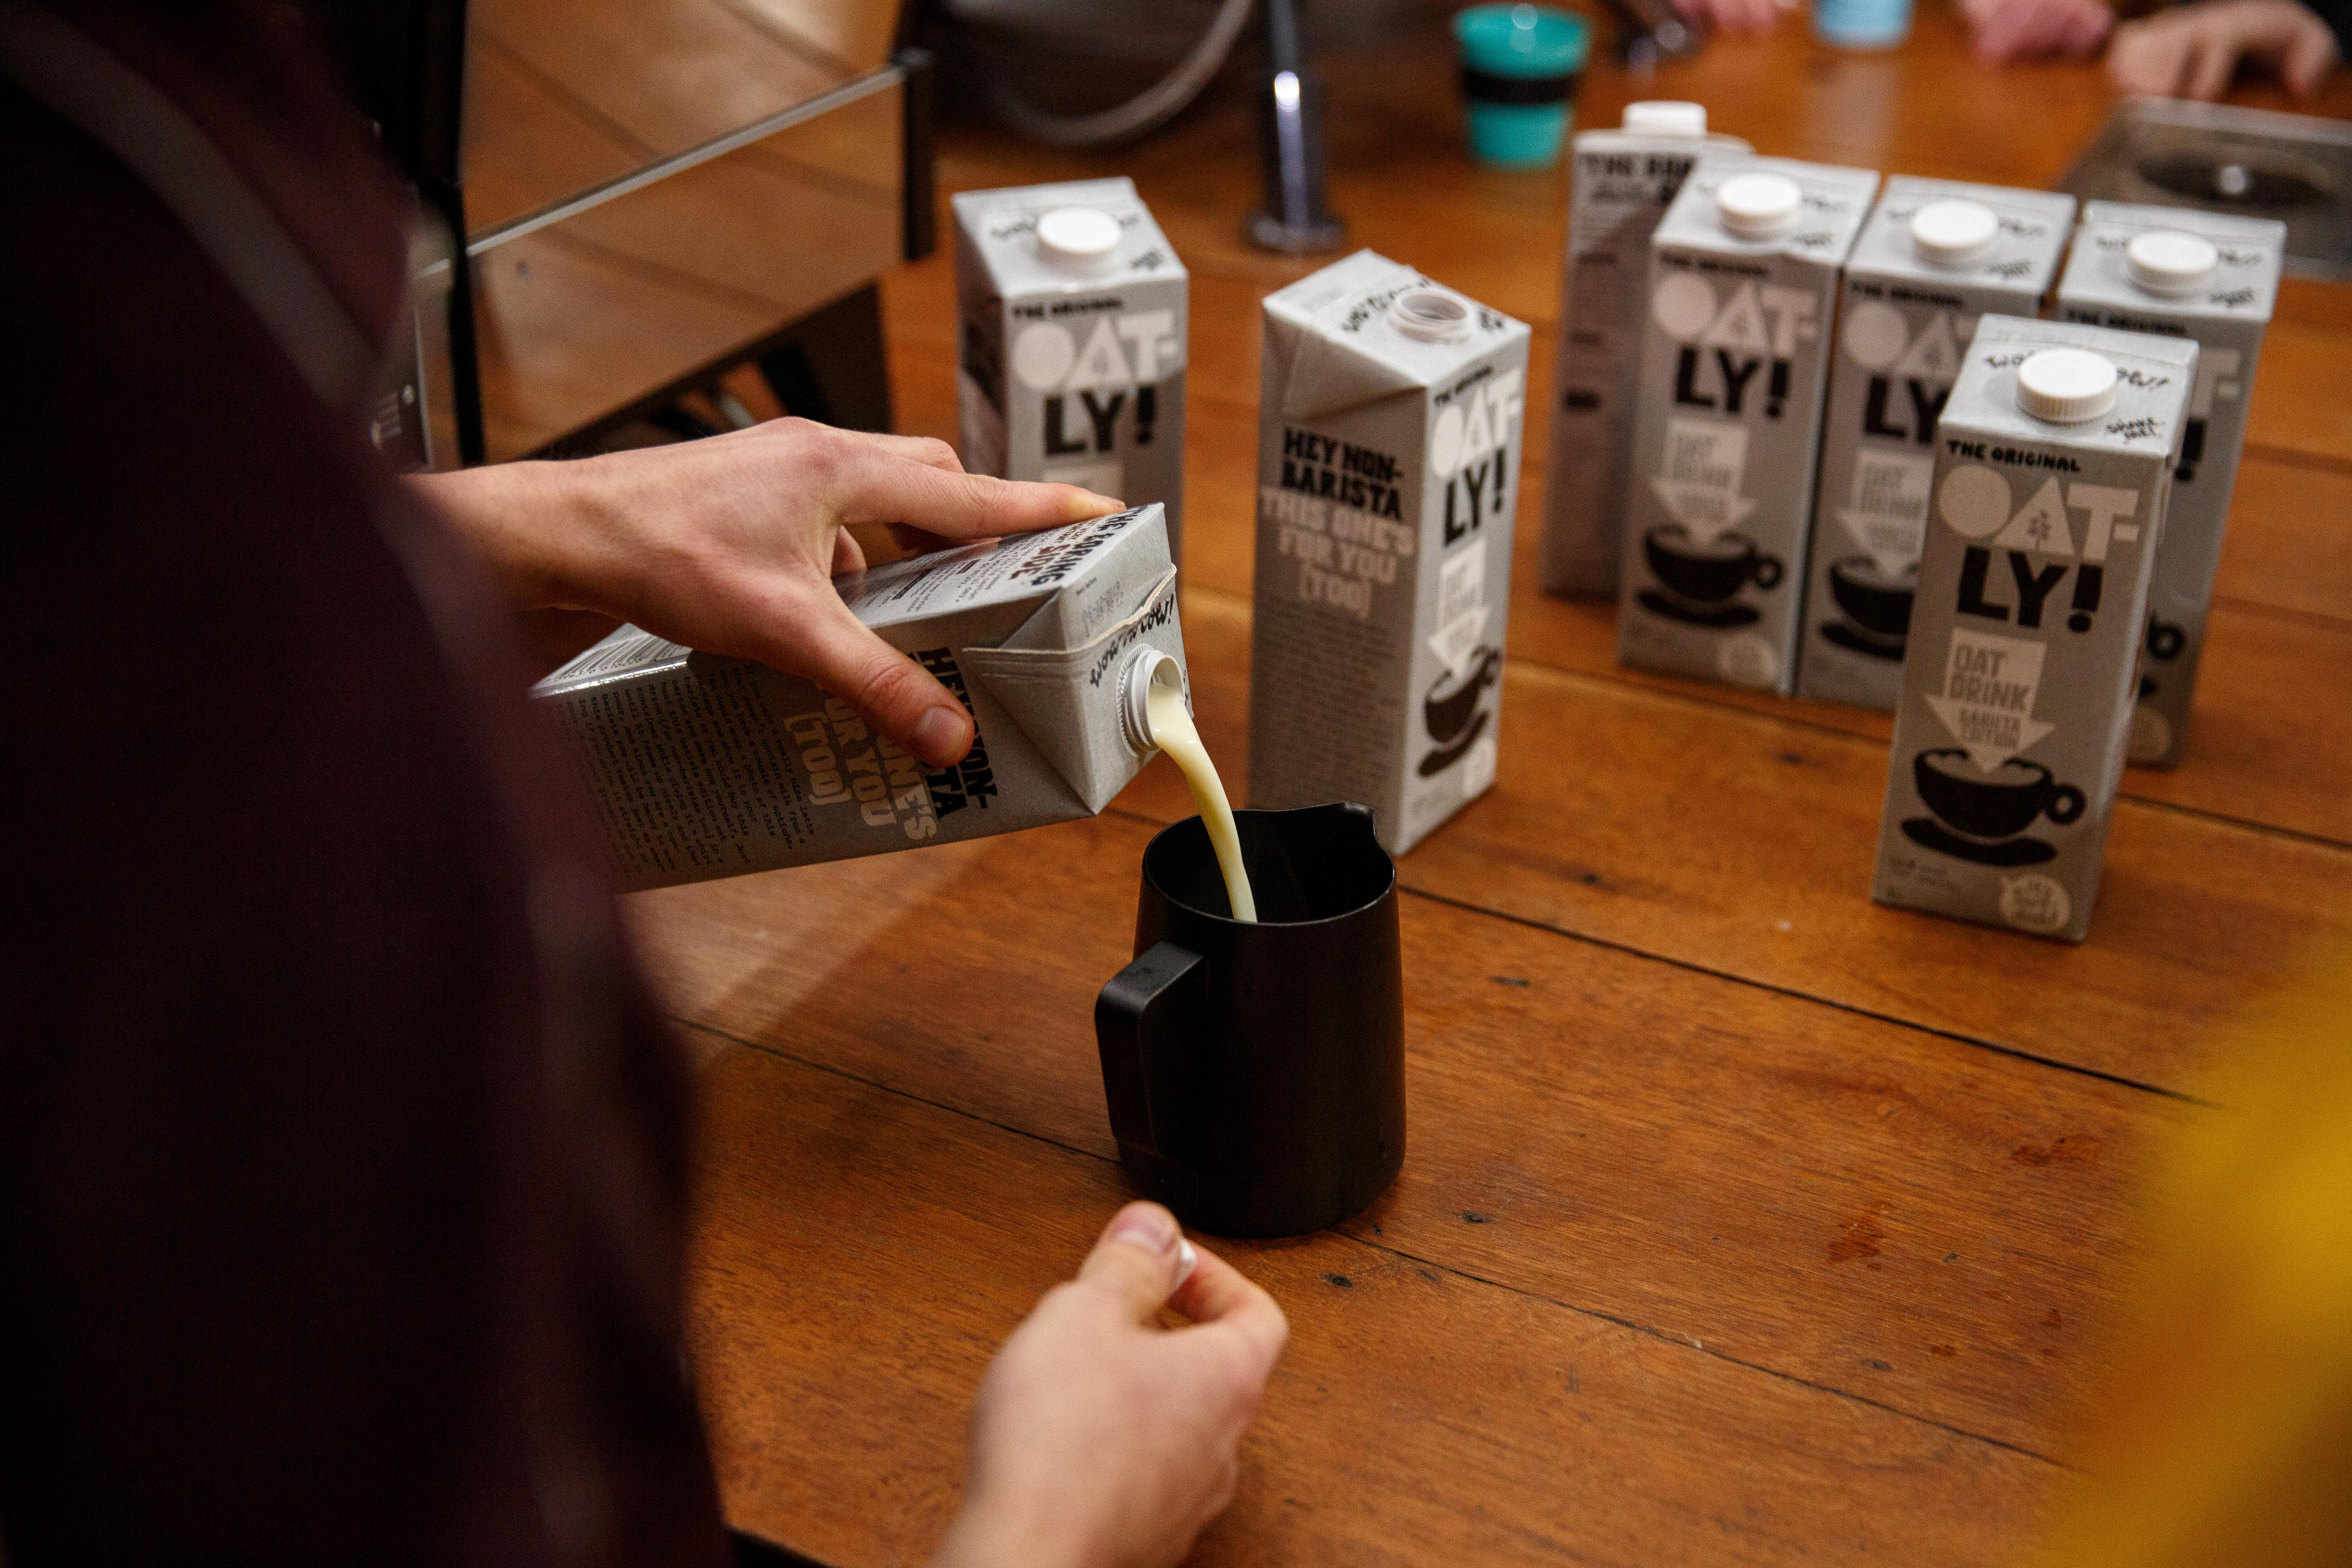 Person pouring Oatly milk into a cup